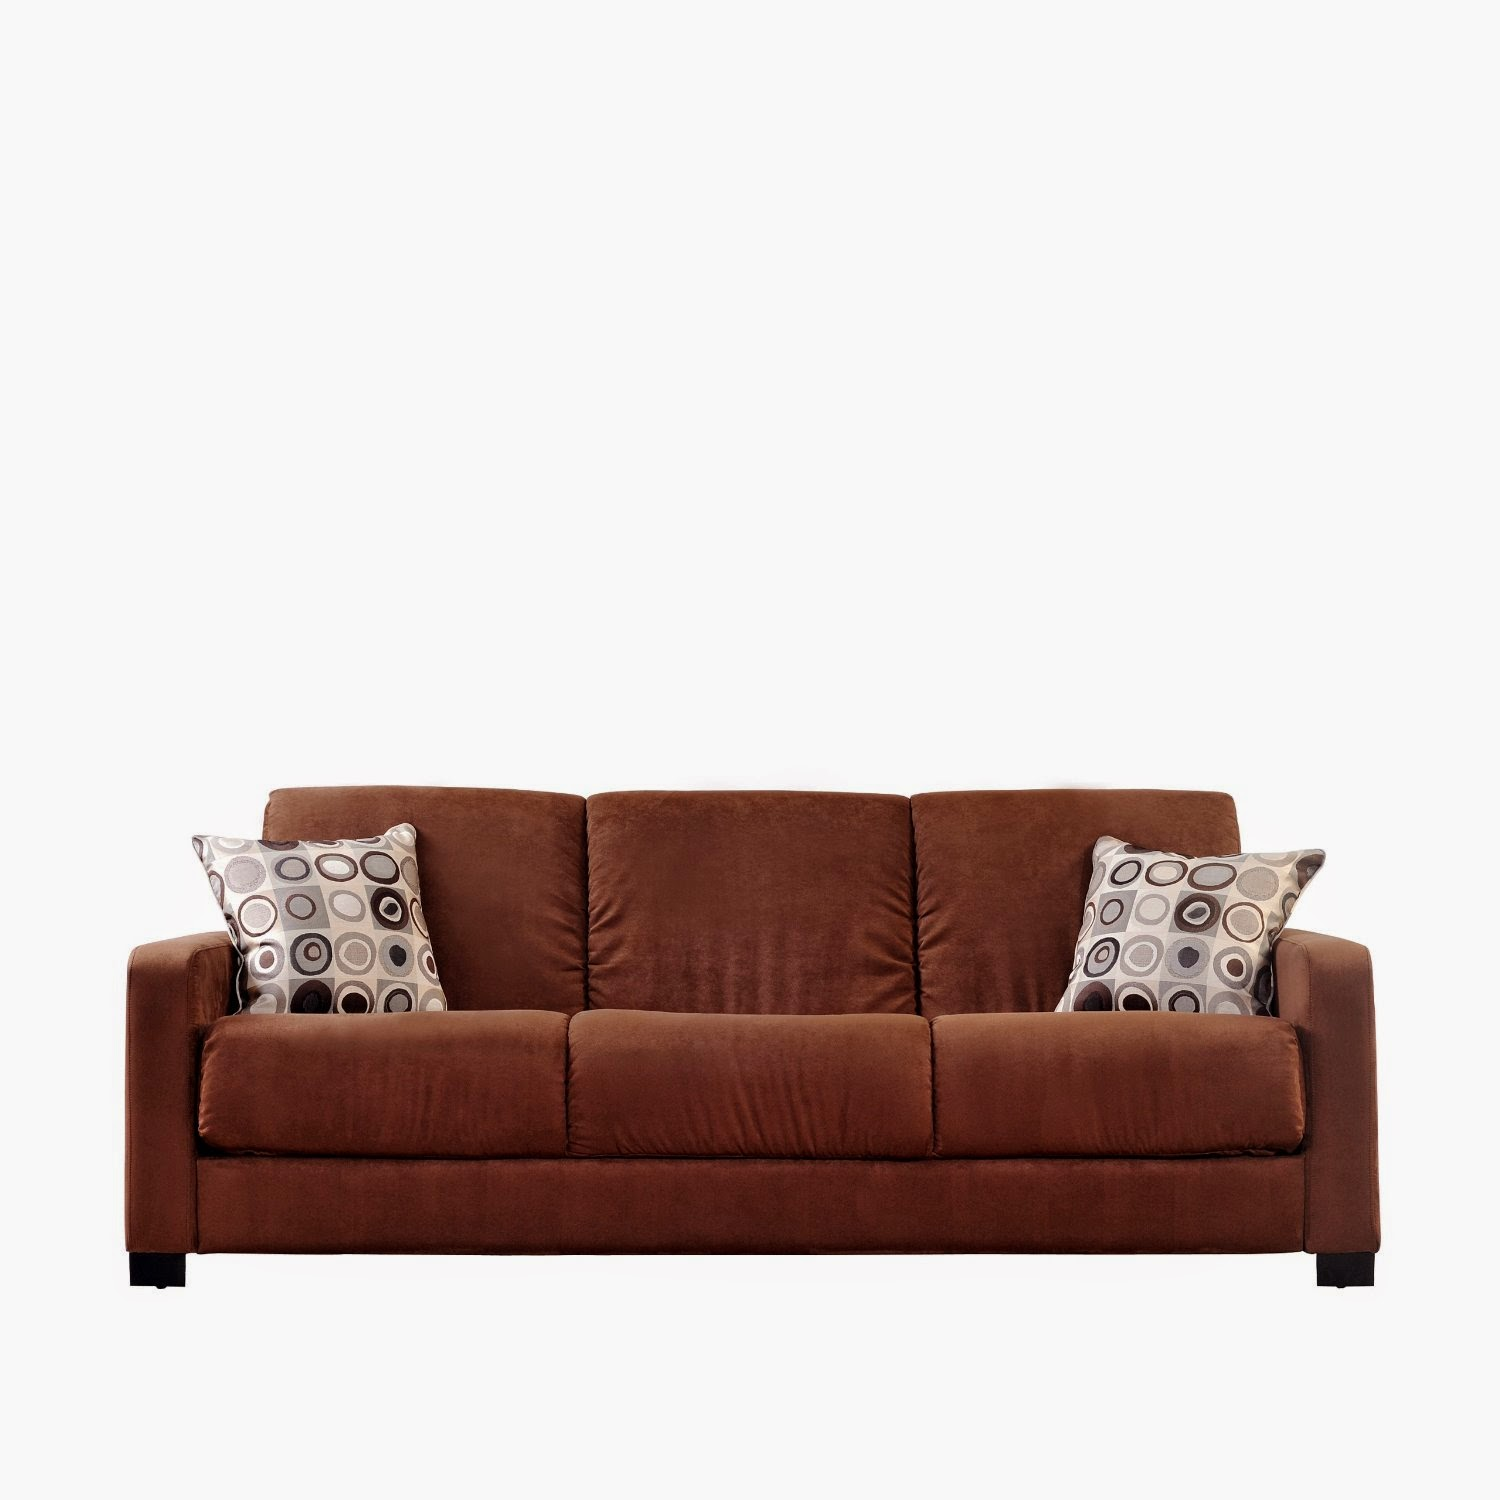 Brown Sofas Cheap Steel Sofa Set Couch Beds